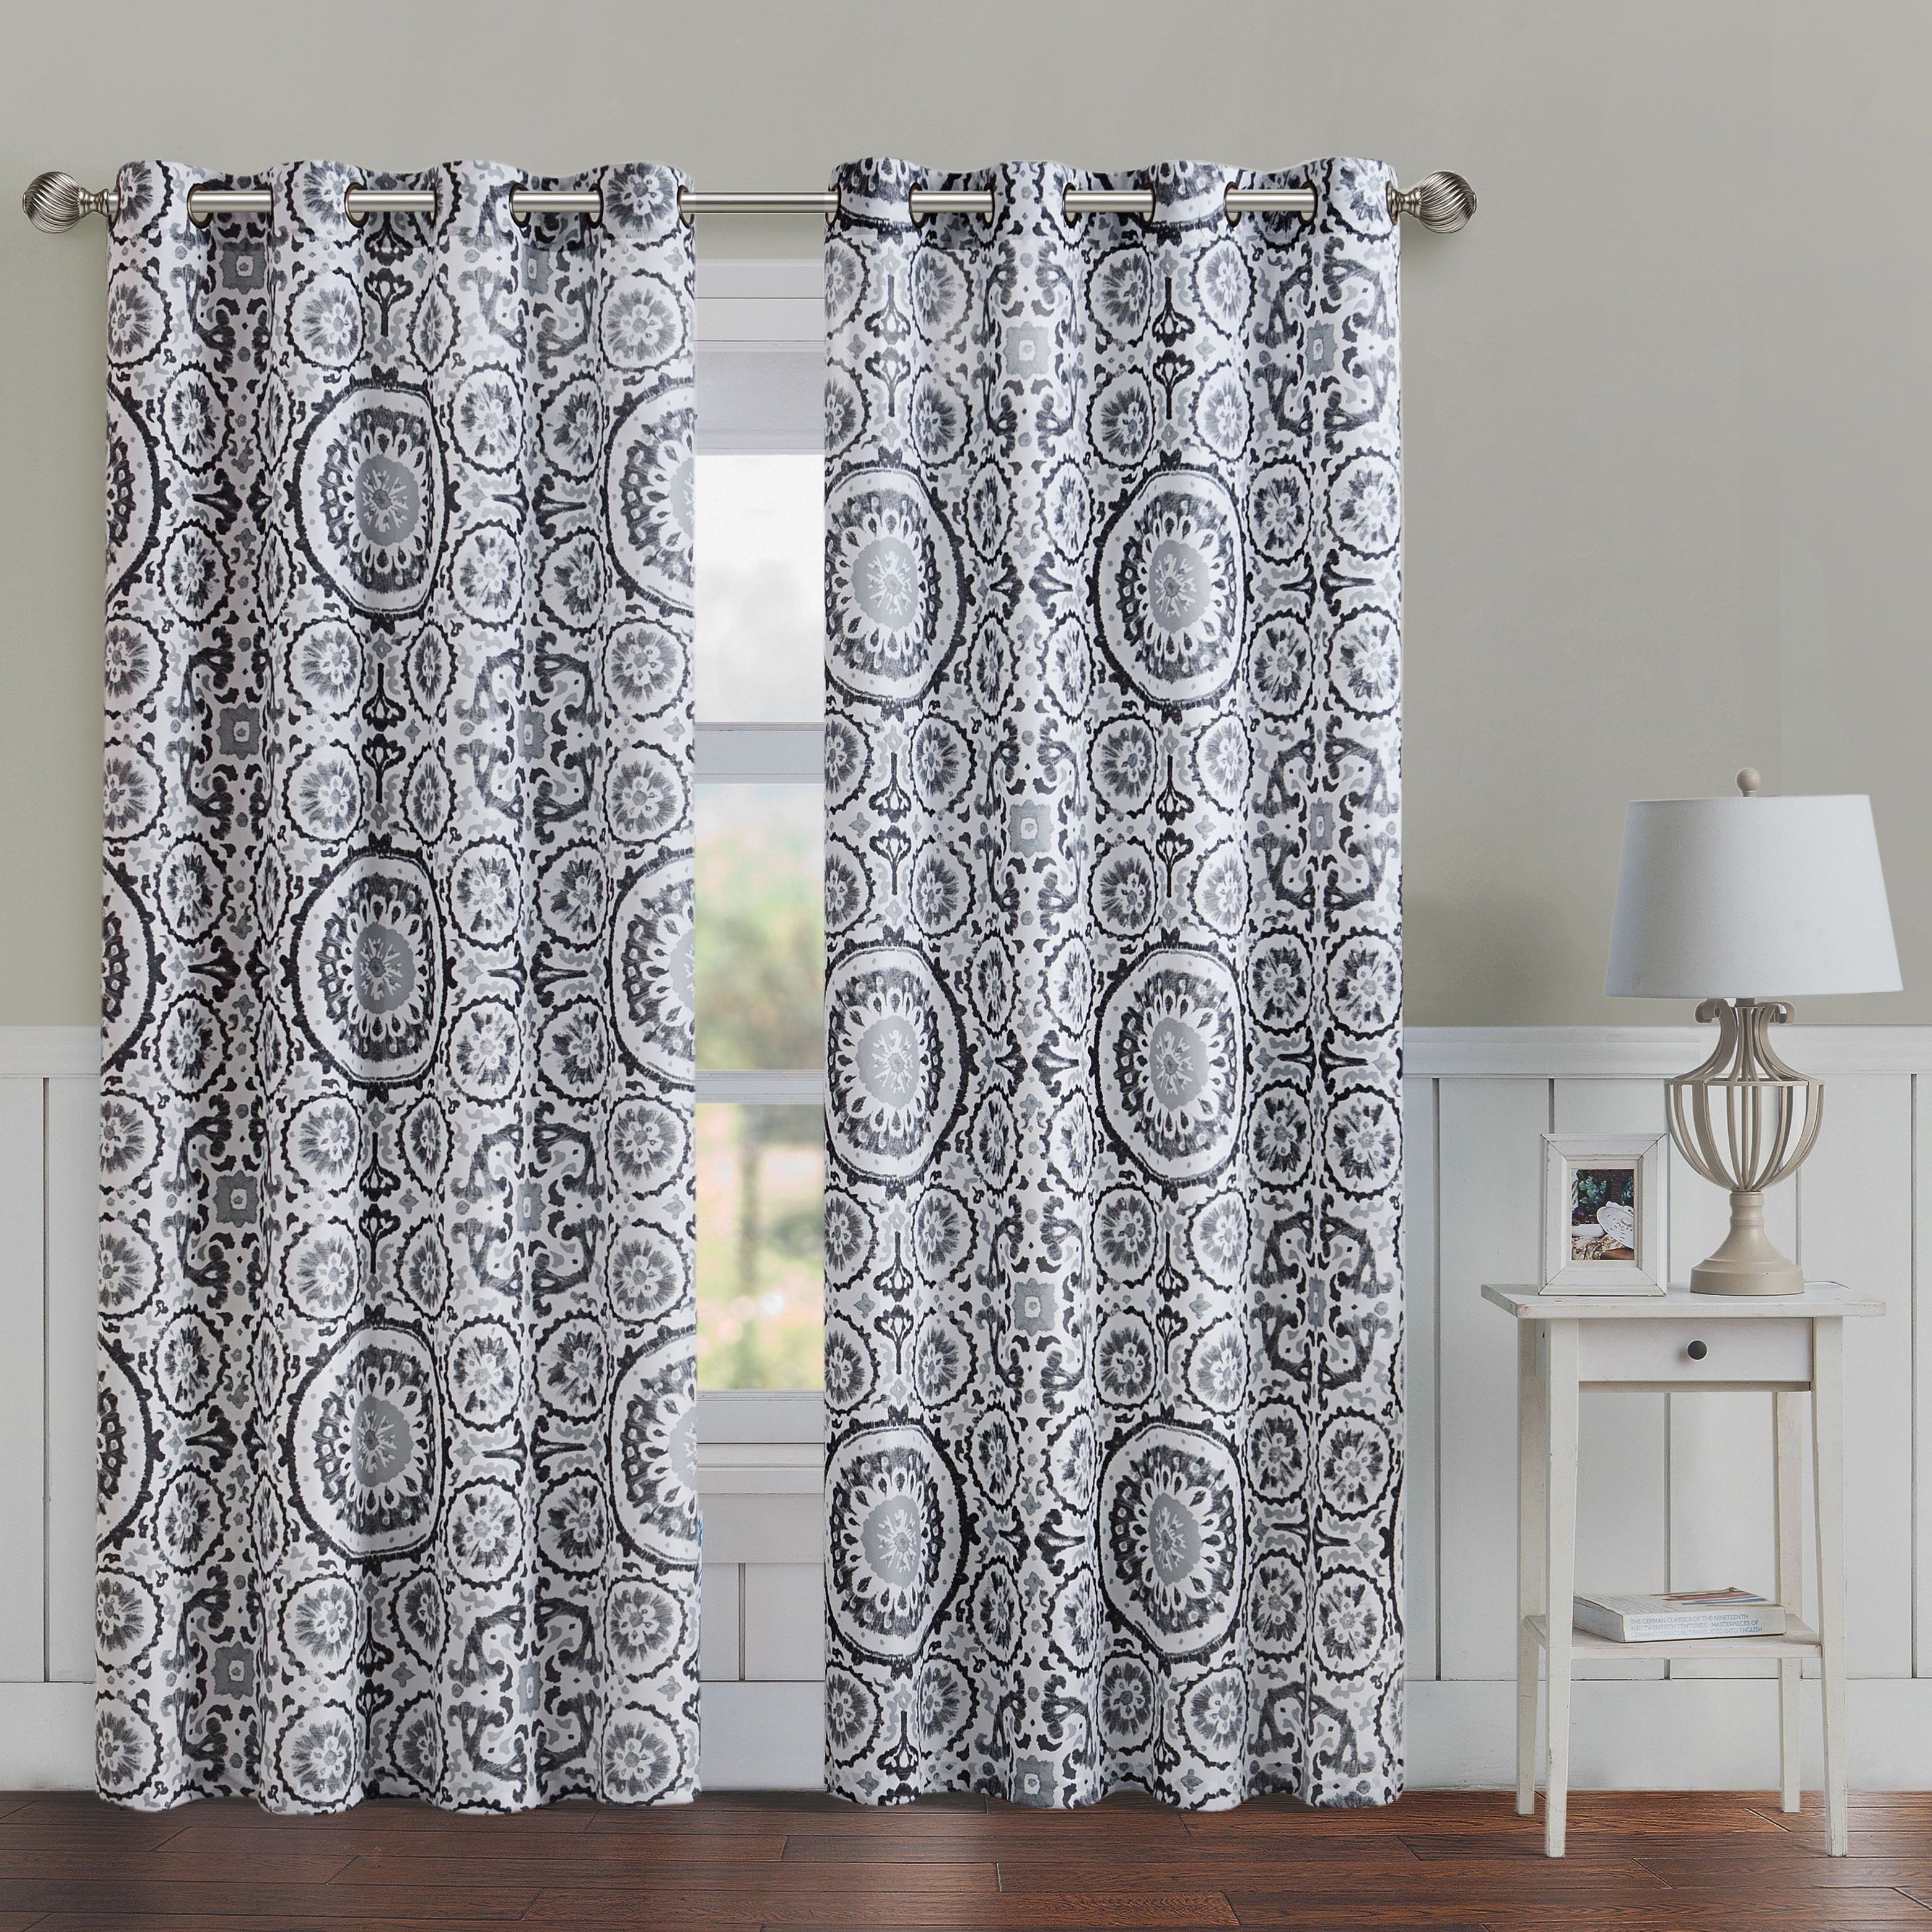 blackout curtain panel free overstock product thermal home solid pair insulated garden panels shipping today